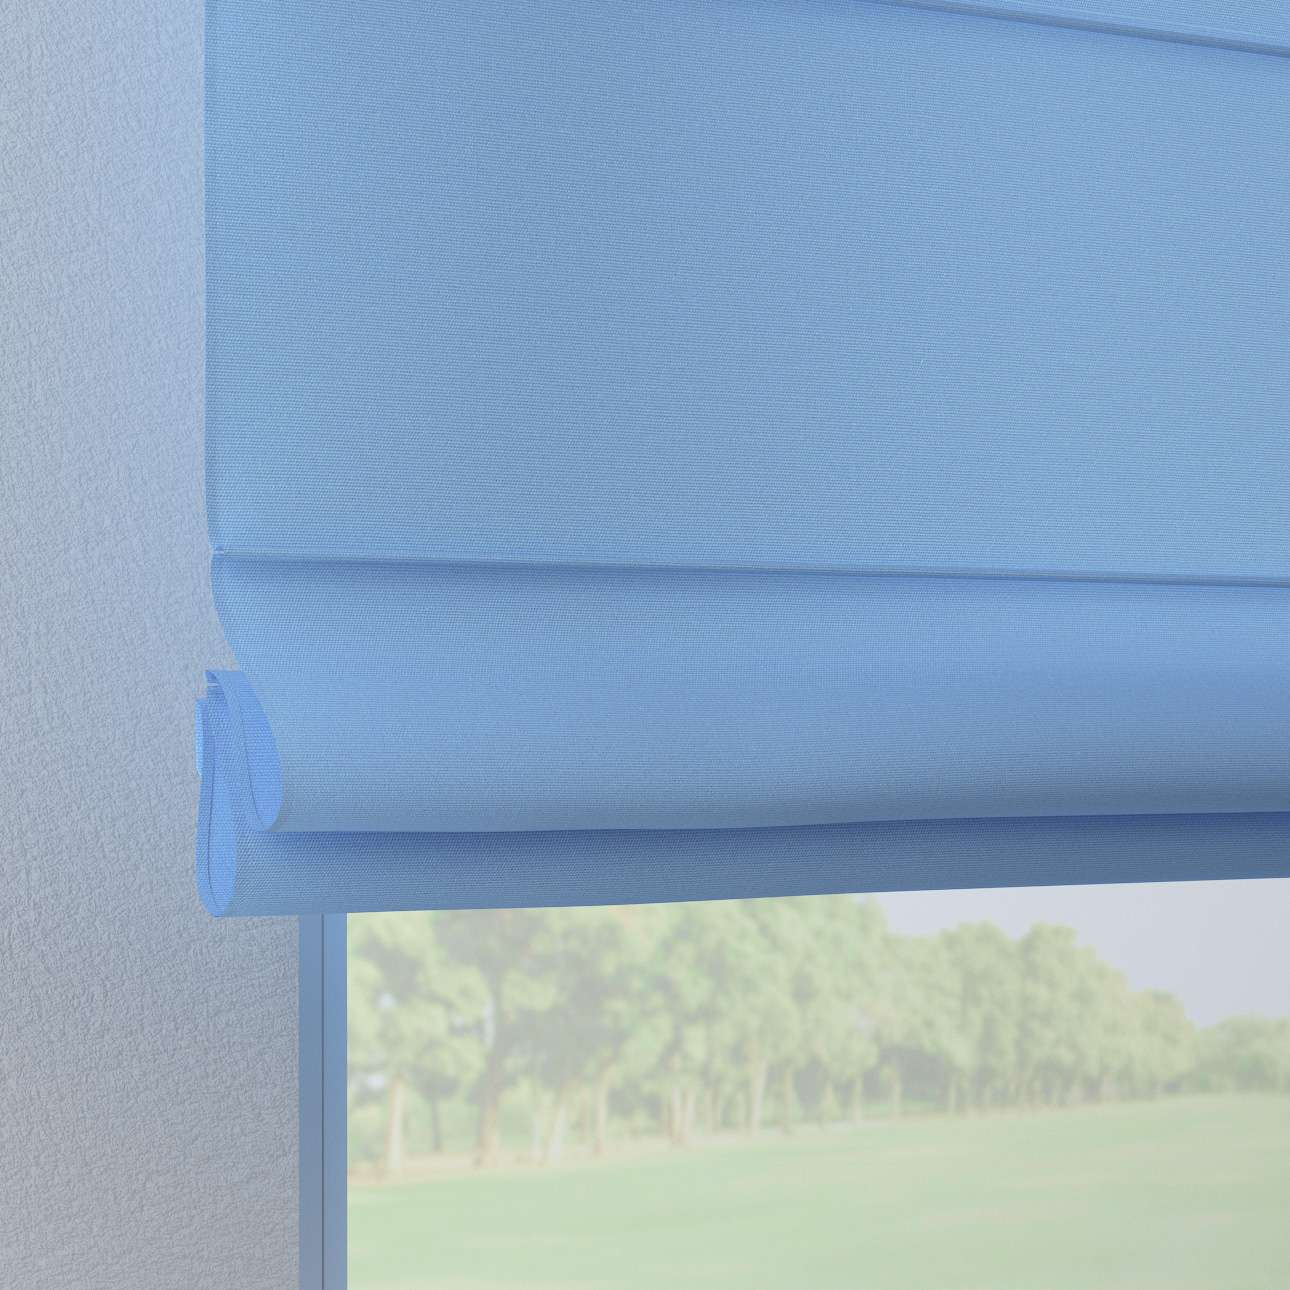 Verona tab top roman blind 80 x 170 cm (31.5 x 67 inch) in collection Loneta , fabric: 133-21